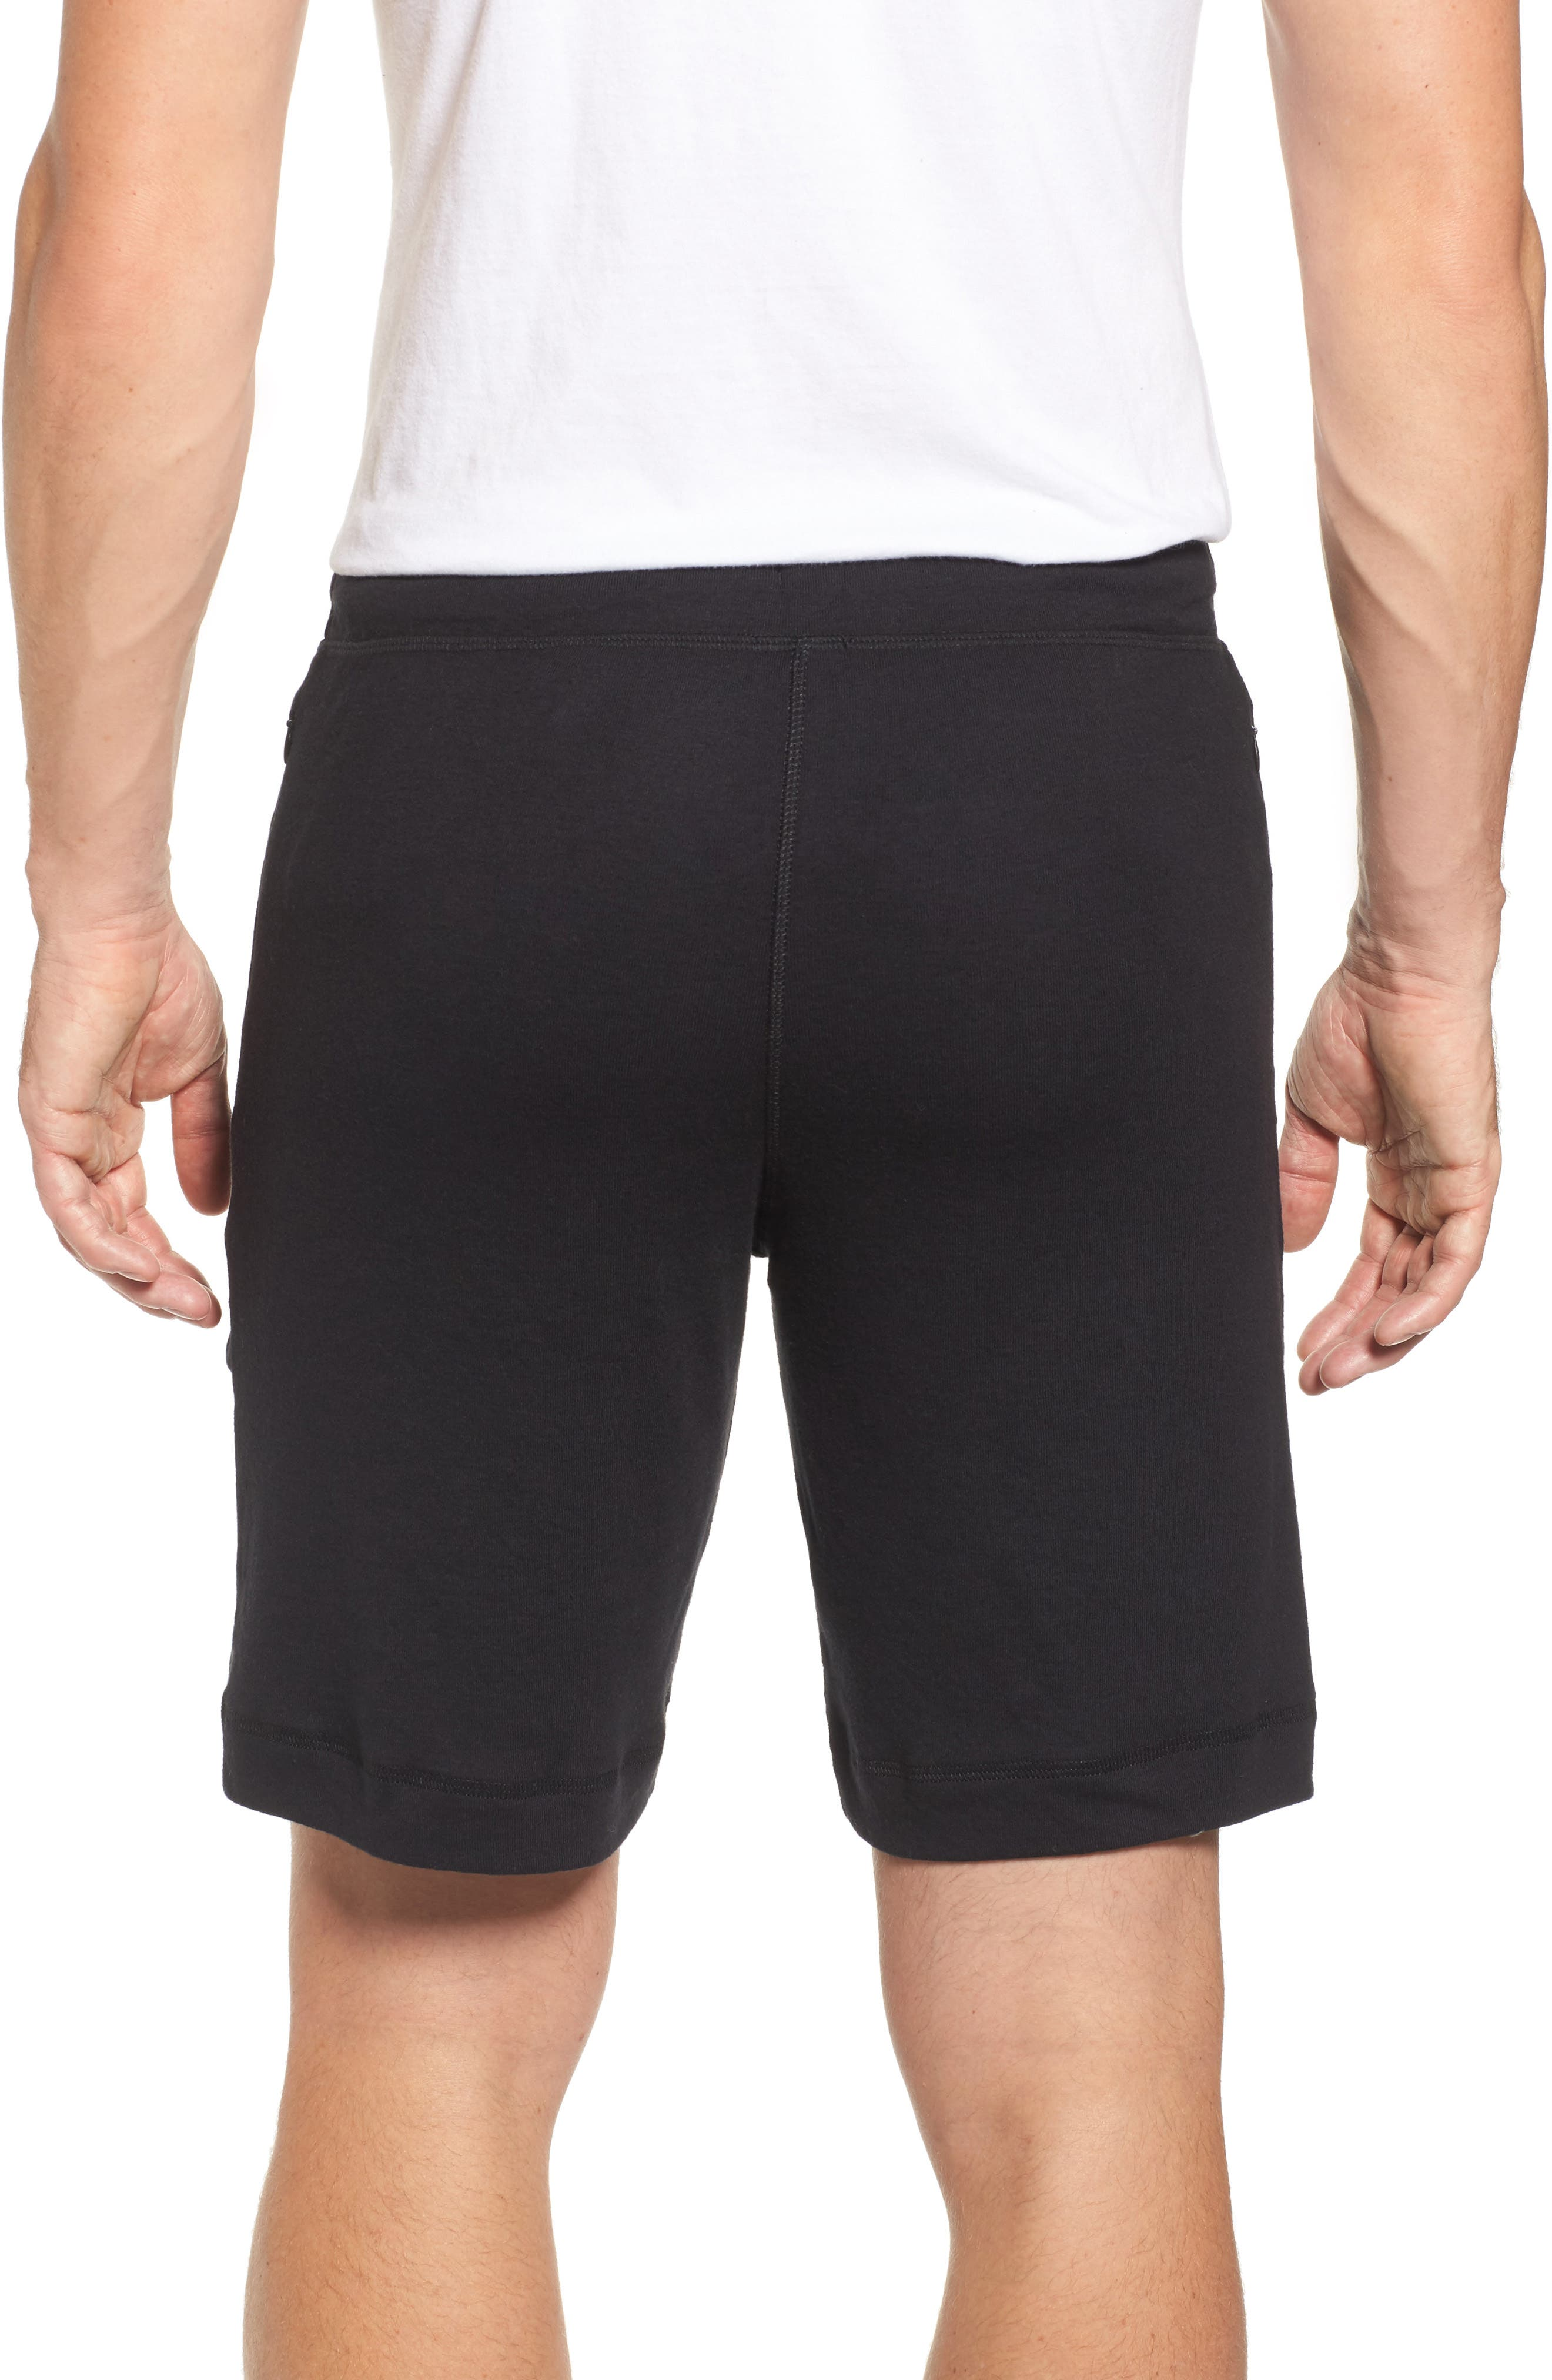 Alternate Image 2  - Alo Revival Relaxed Knit Shorts